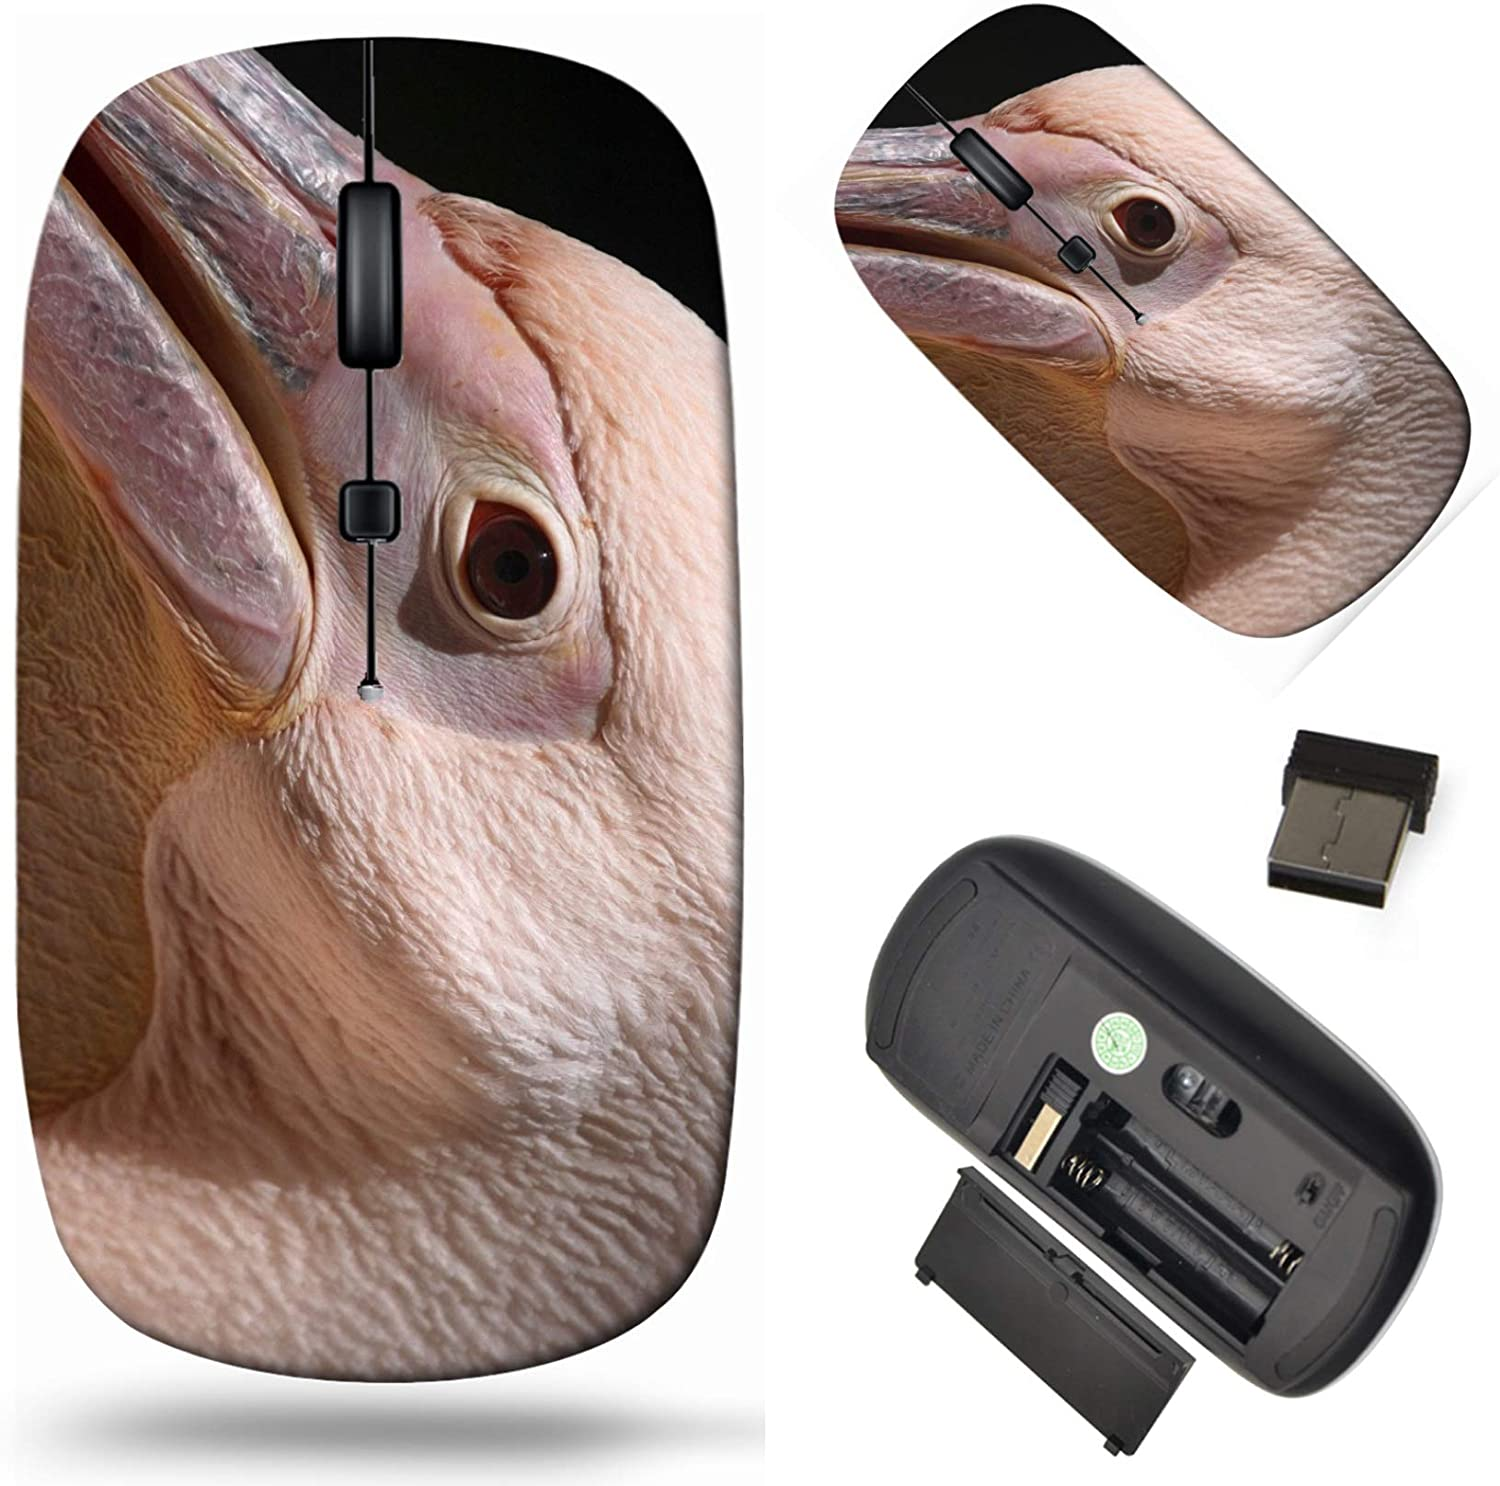 100% quality warranty! Wireless Computer Mouse 2.4G with USB Laptop Cor Receiver Free shipping